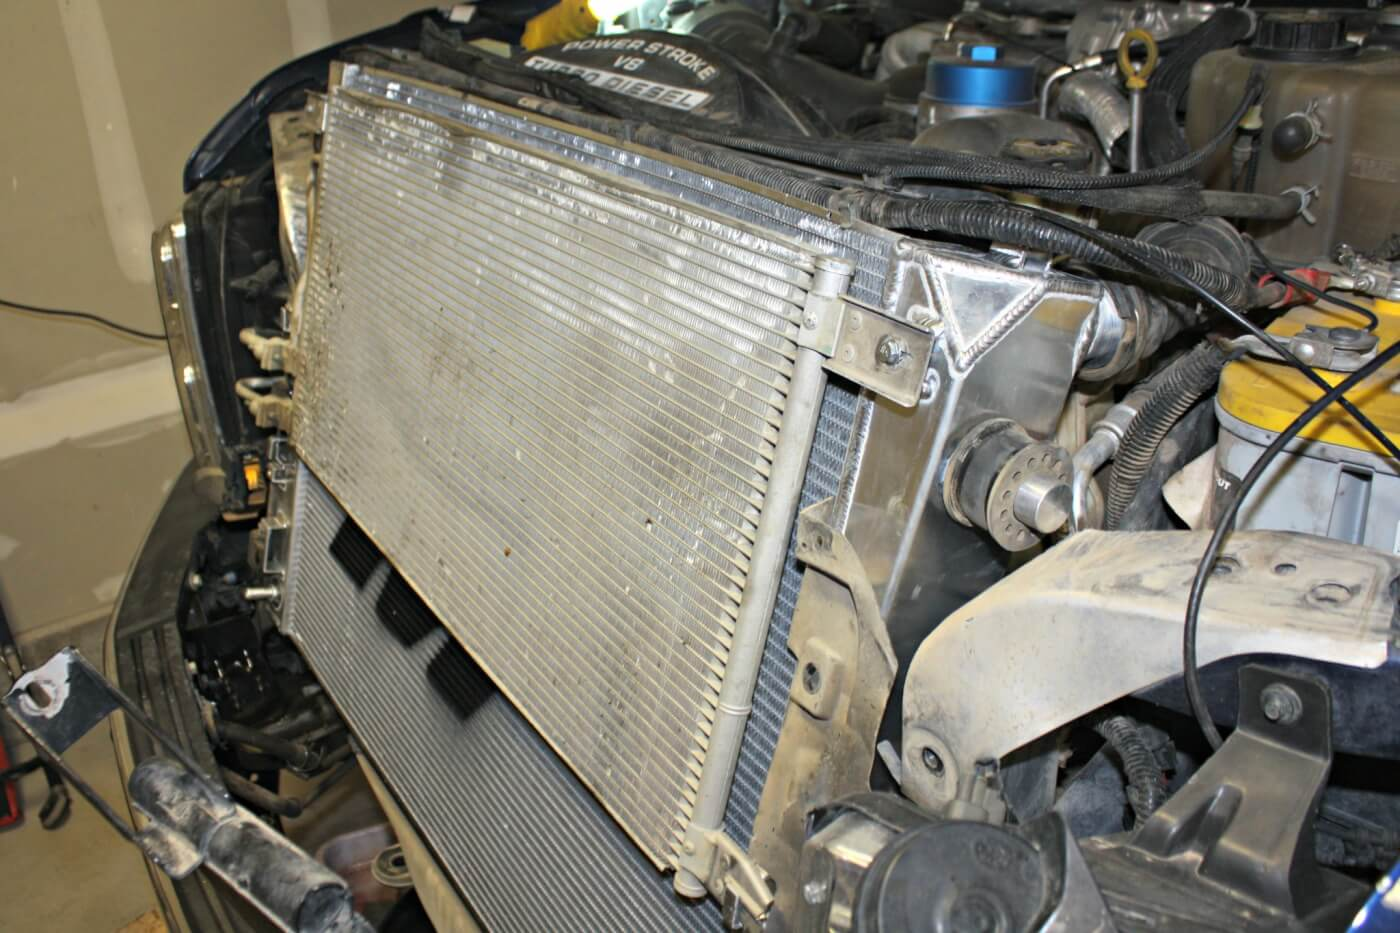 16. With the help of a friend the new radiator can be installed in the truck; reassembly is the reverse of disassembly.